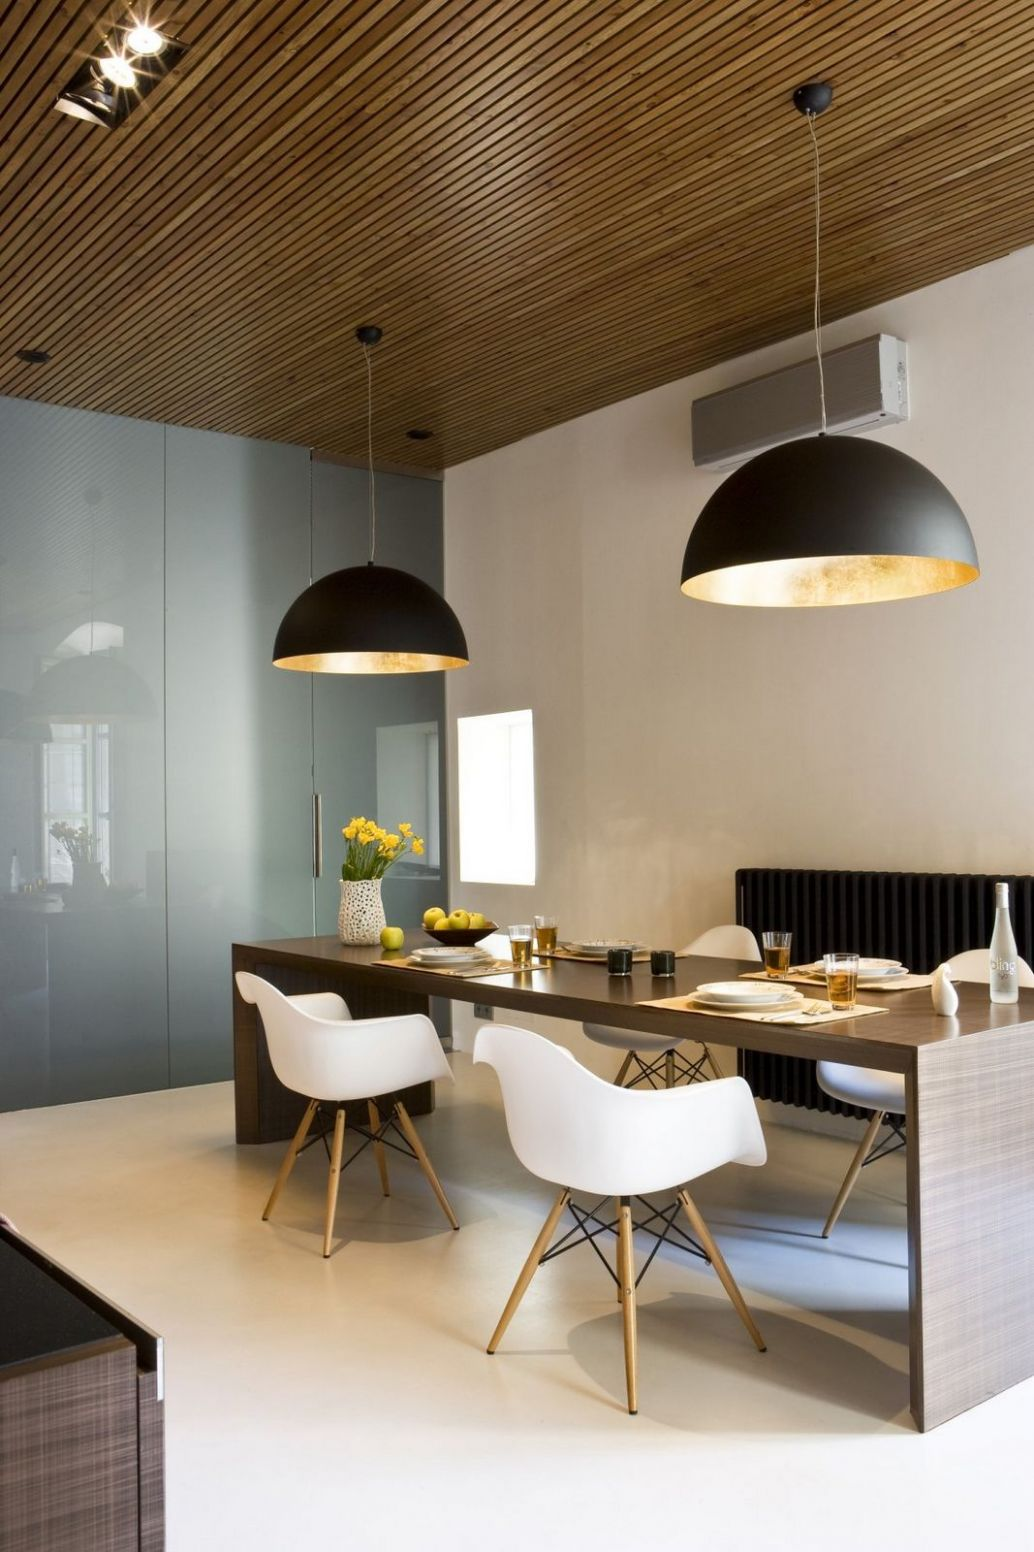 Zen Dining Room Ideas | aldystalkerz.blogspot.com